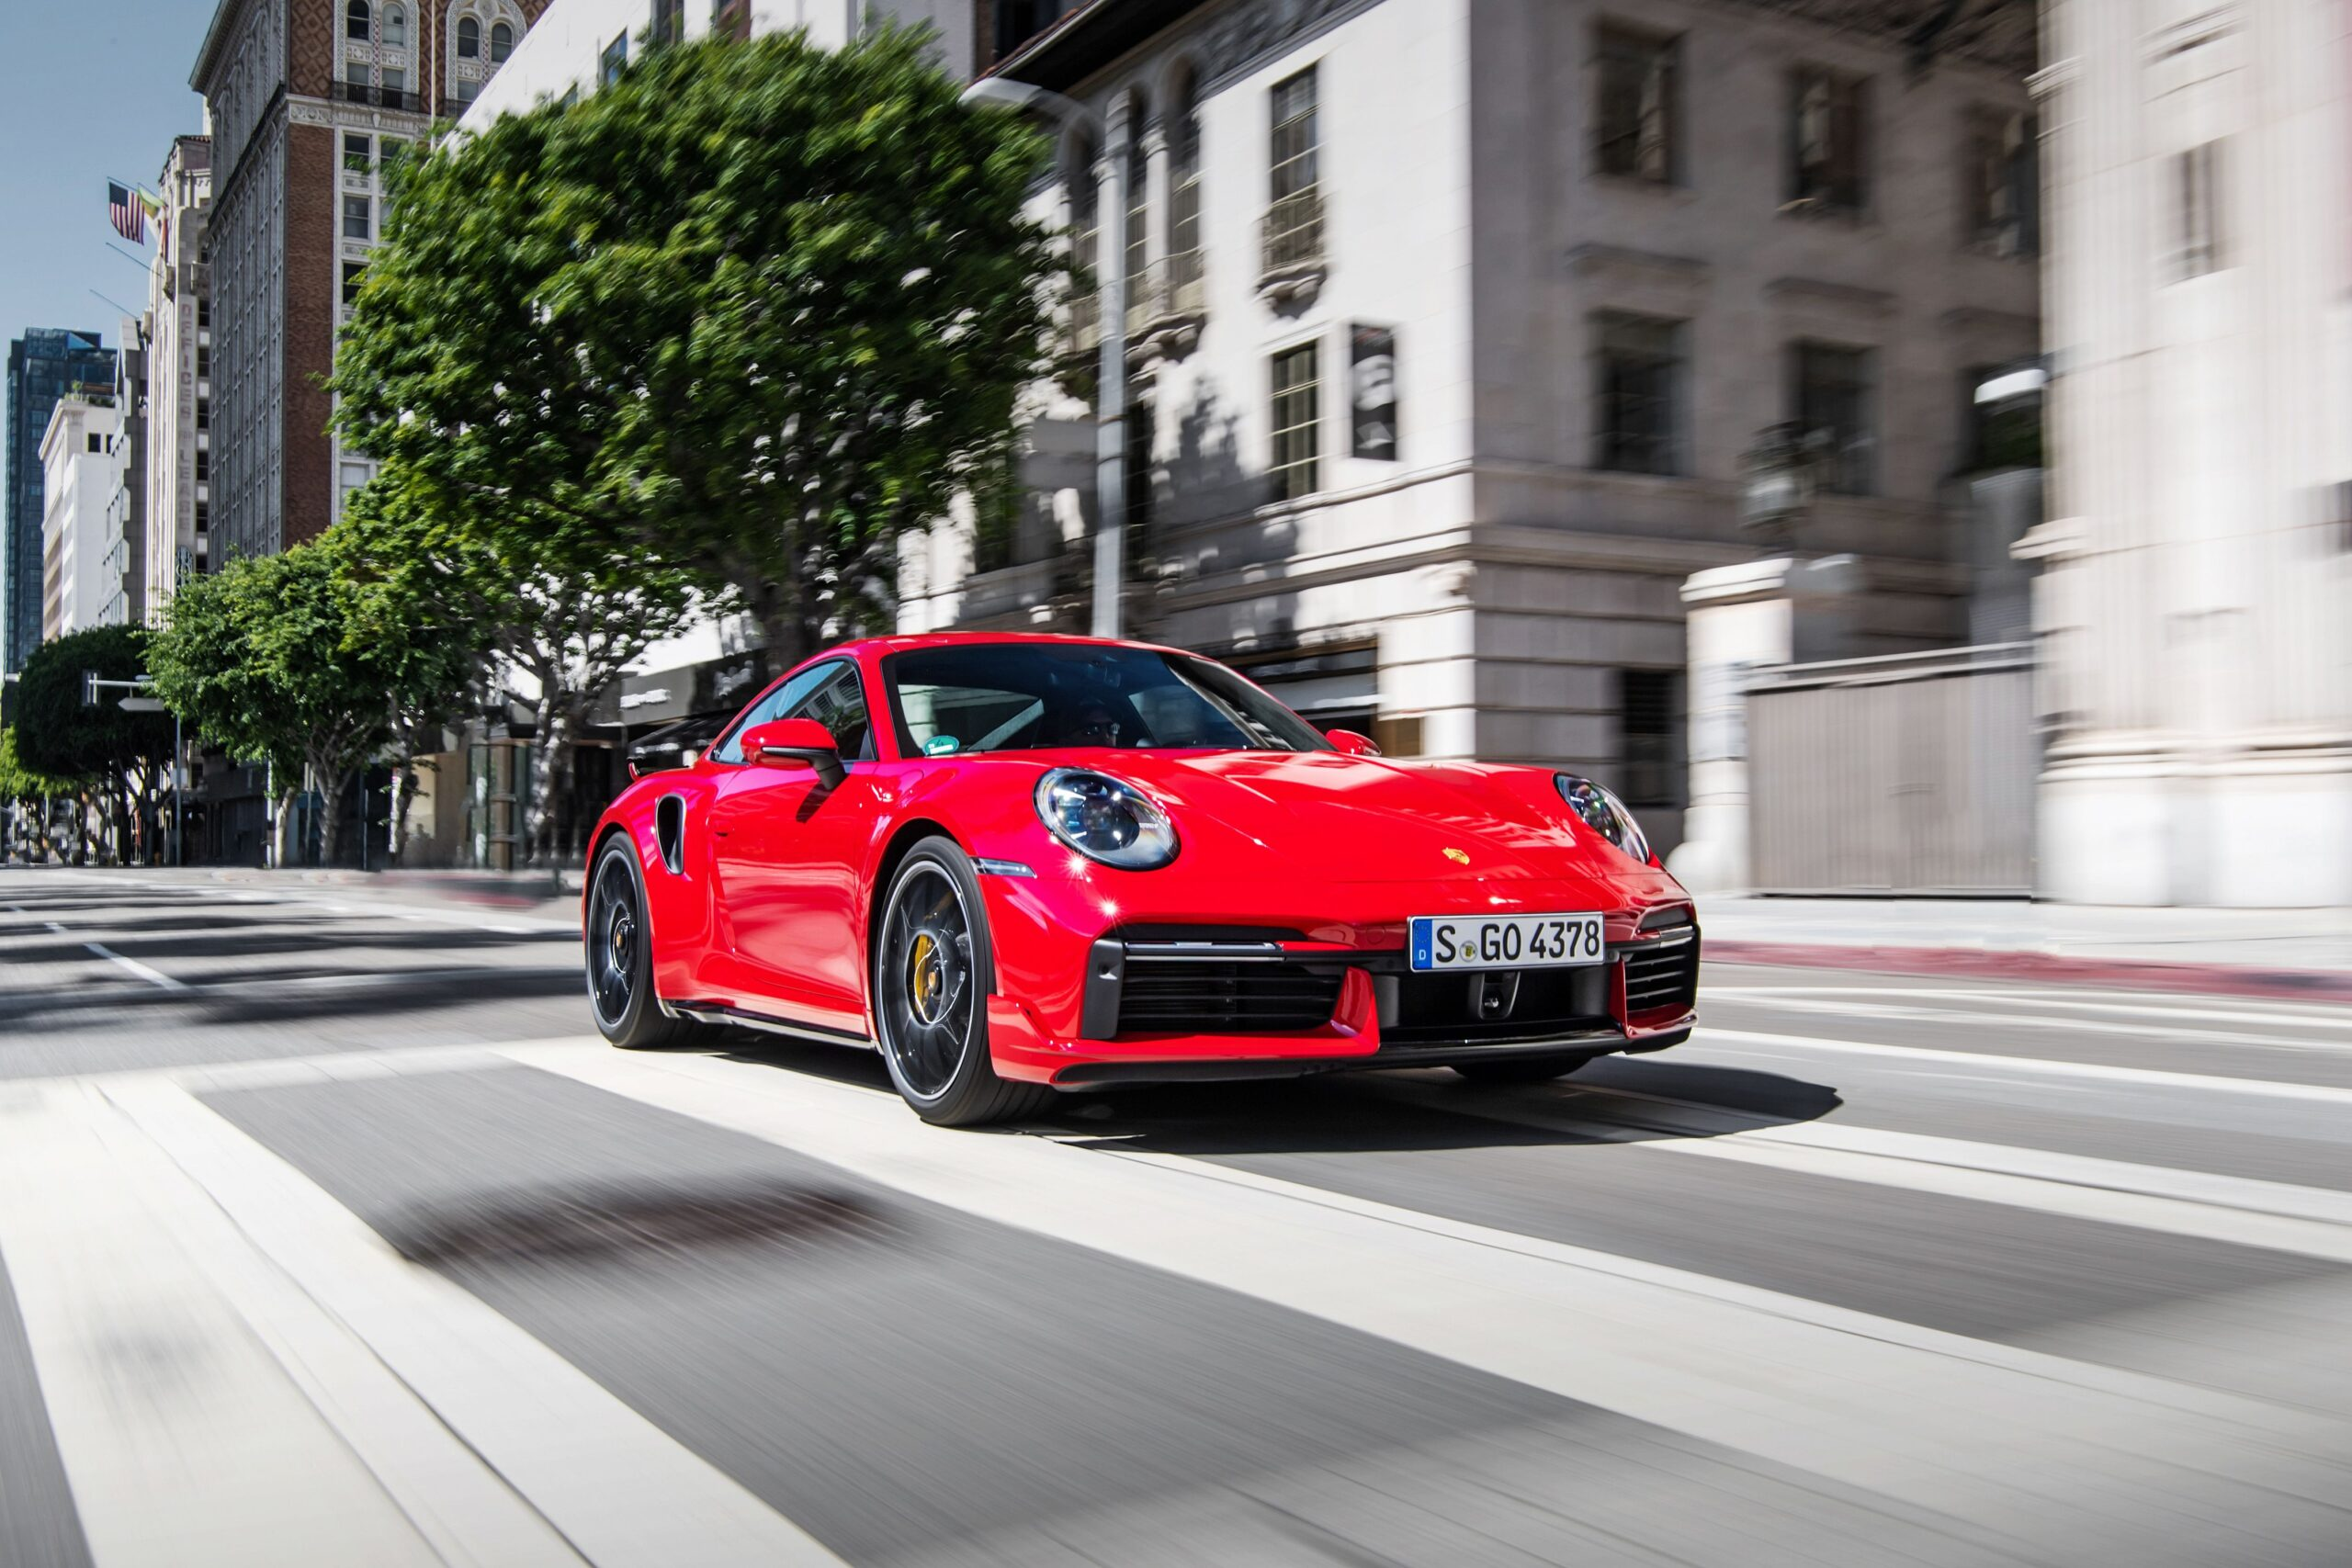 2020 Porsche 911 Turbo S Launched In  India